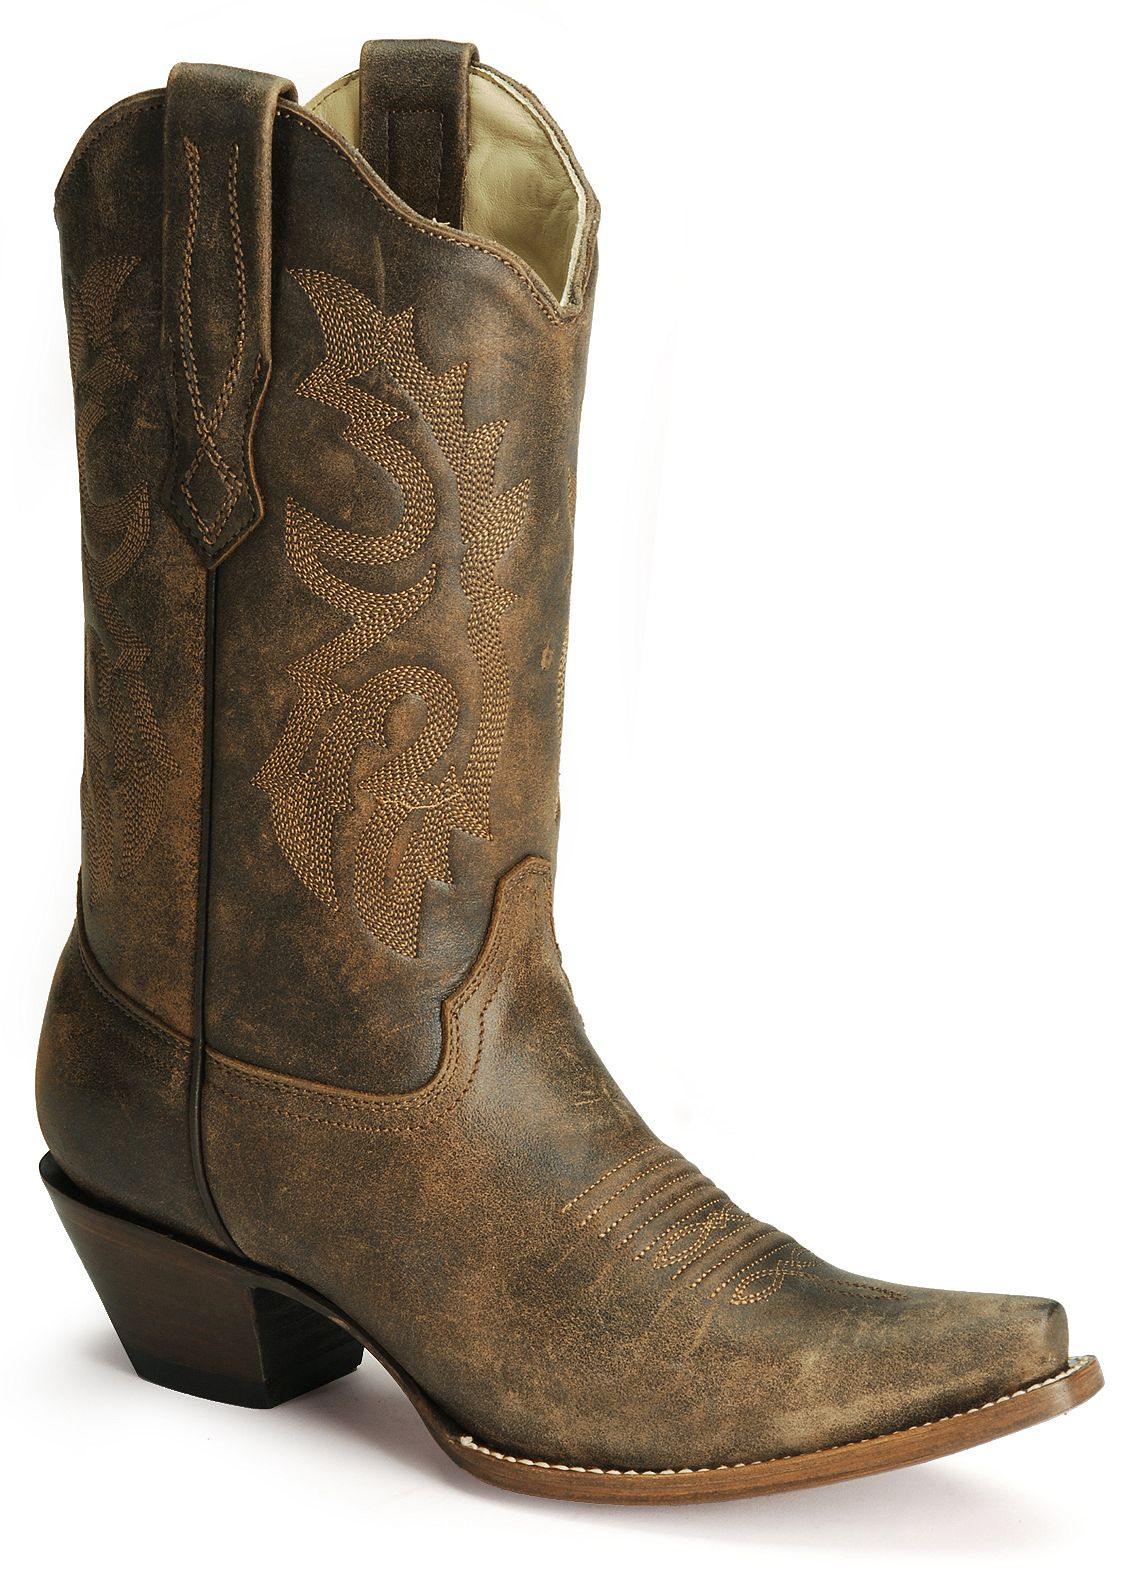 Corral Distressed Leather Western Cowgirl Boots Snip Toe